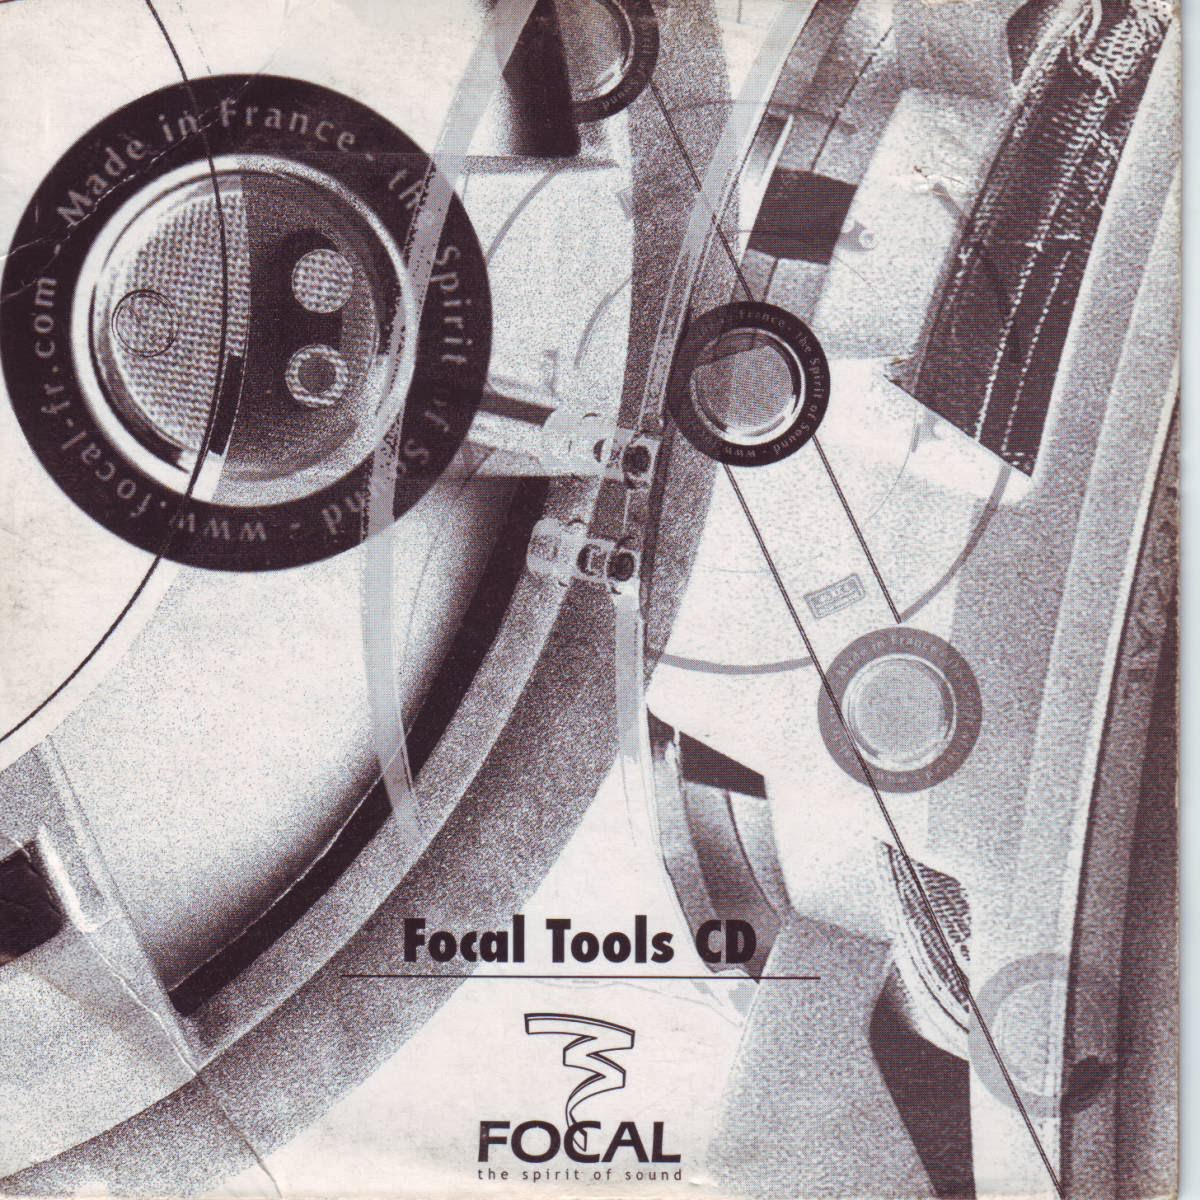 FOCAL TOOLS CD